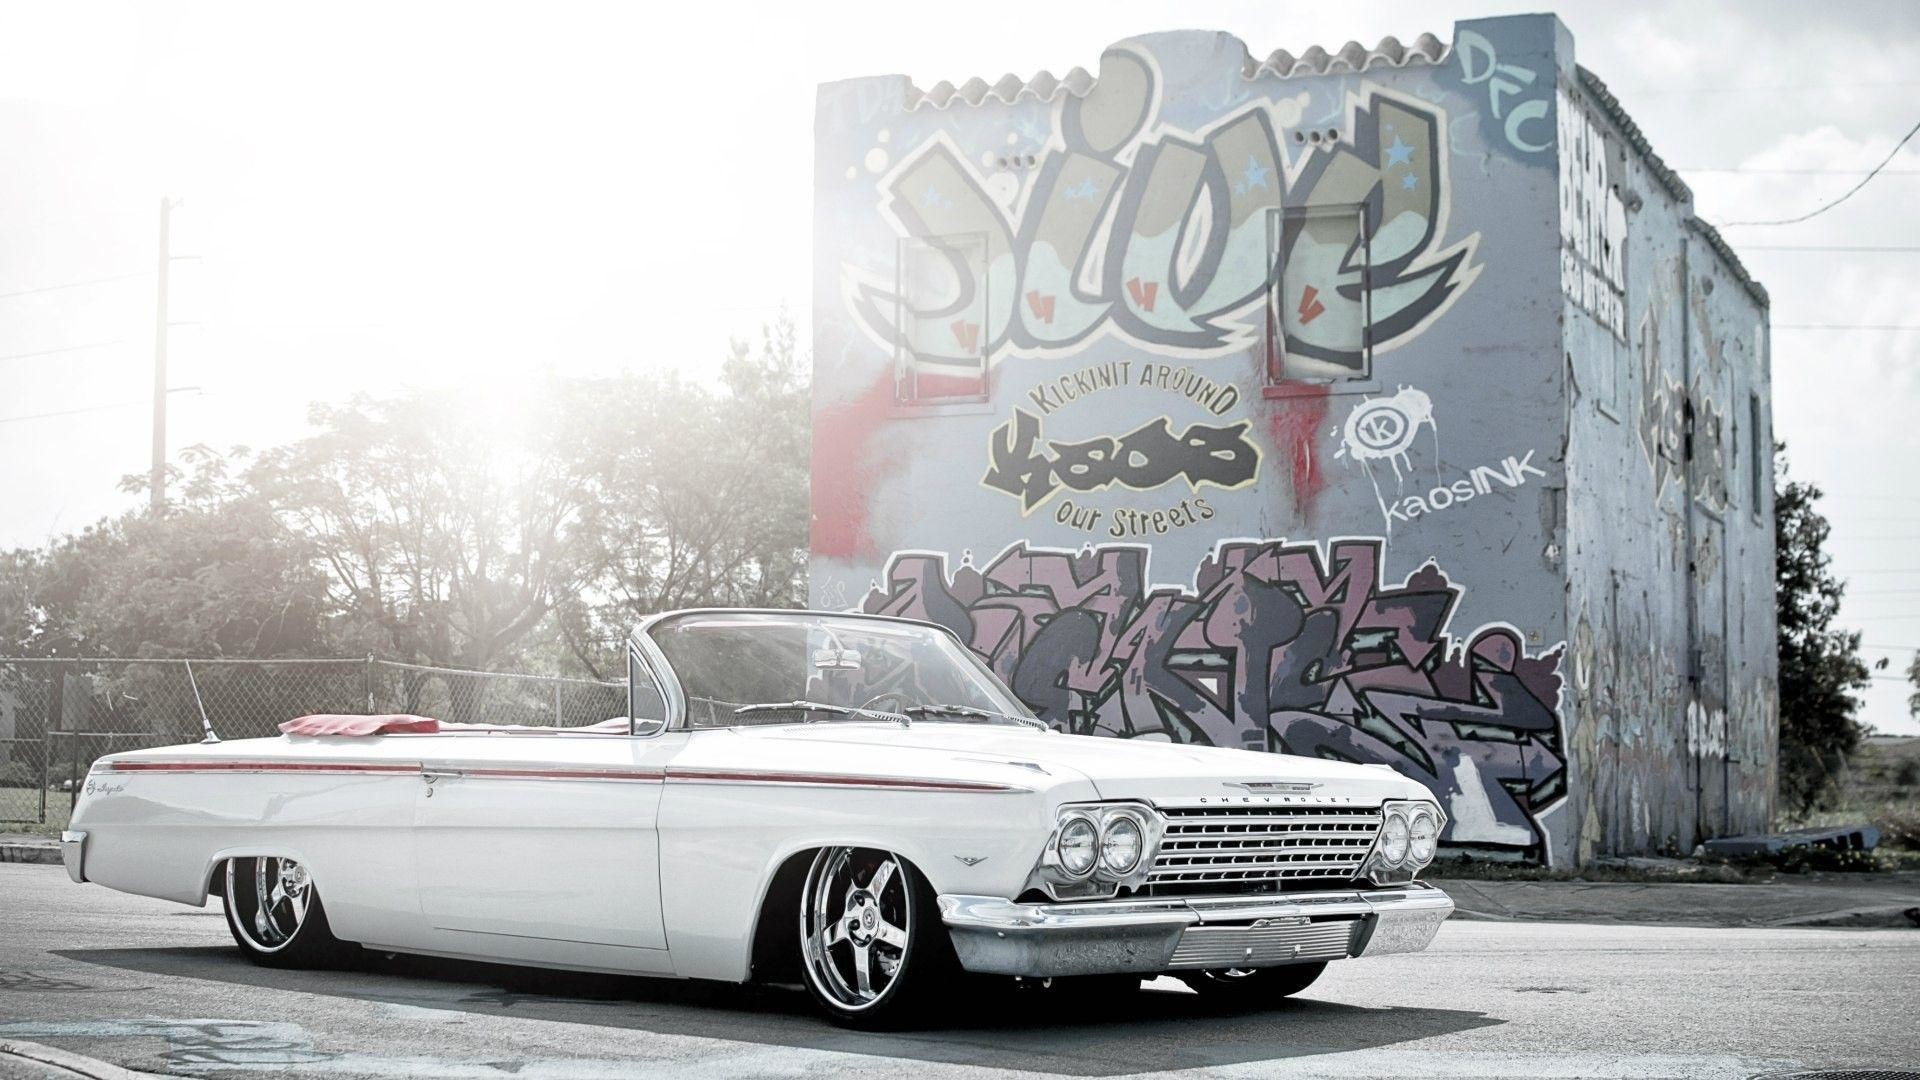 1920x1080 - Lowrider Wallpapers 21